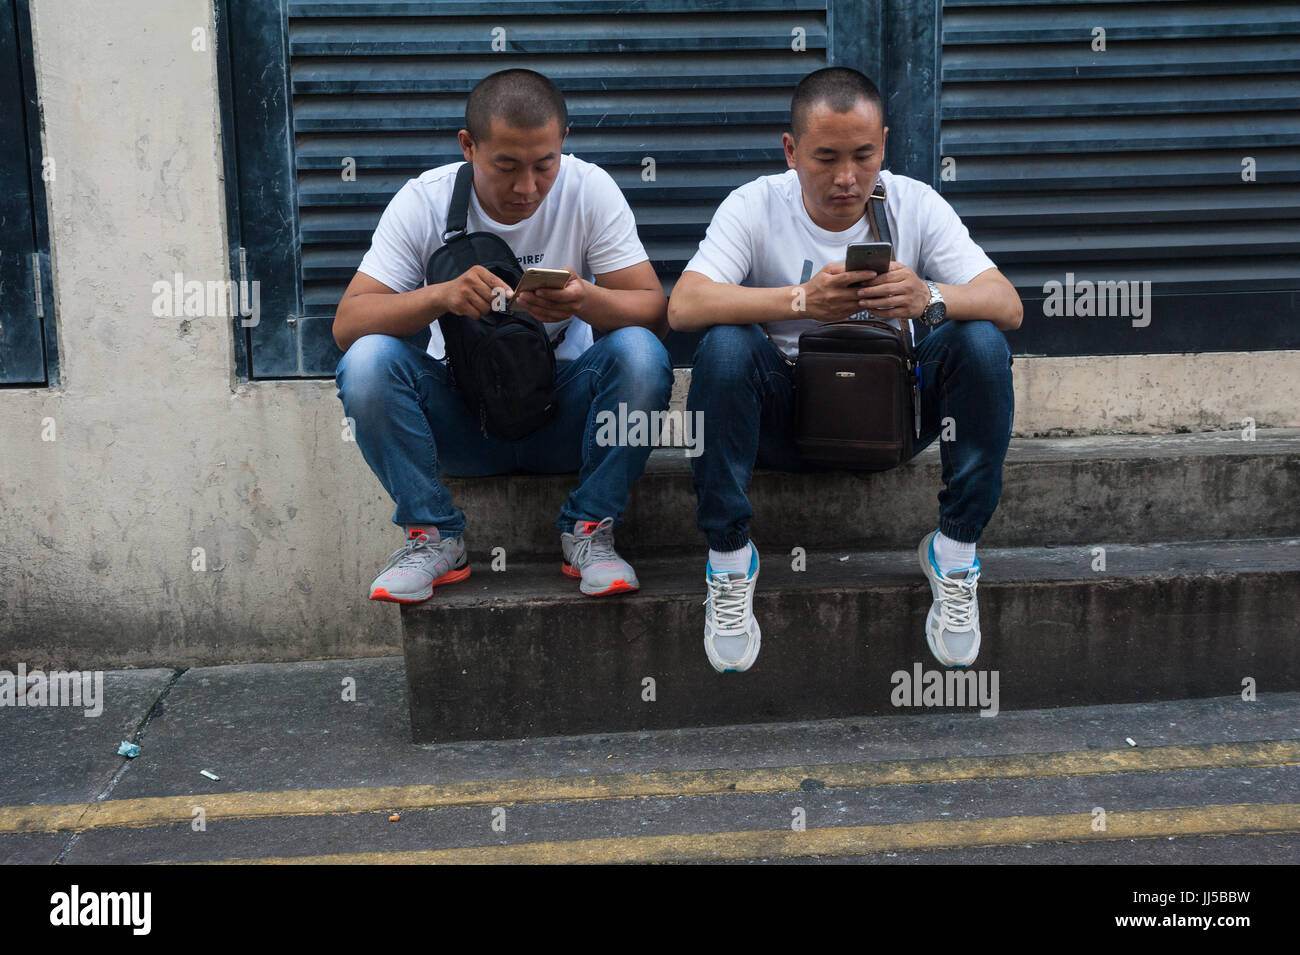 16.07.2017, Singapore, Republic of Singapore, Asia - Two men are occupied with their smartphones in Singapore's - Stock Image